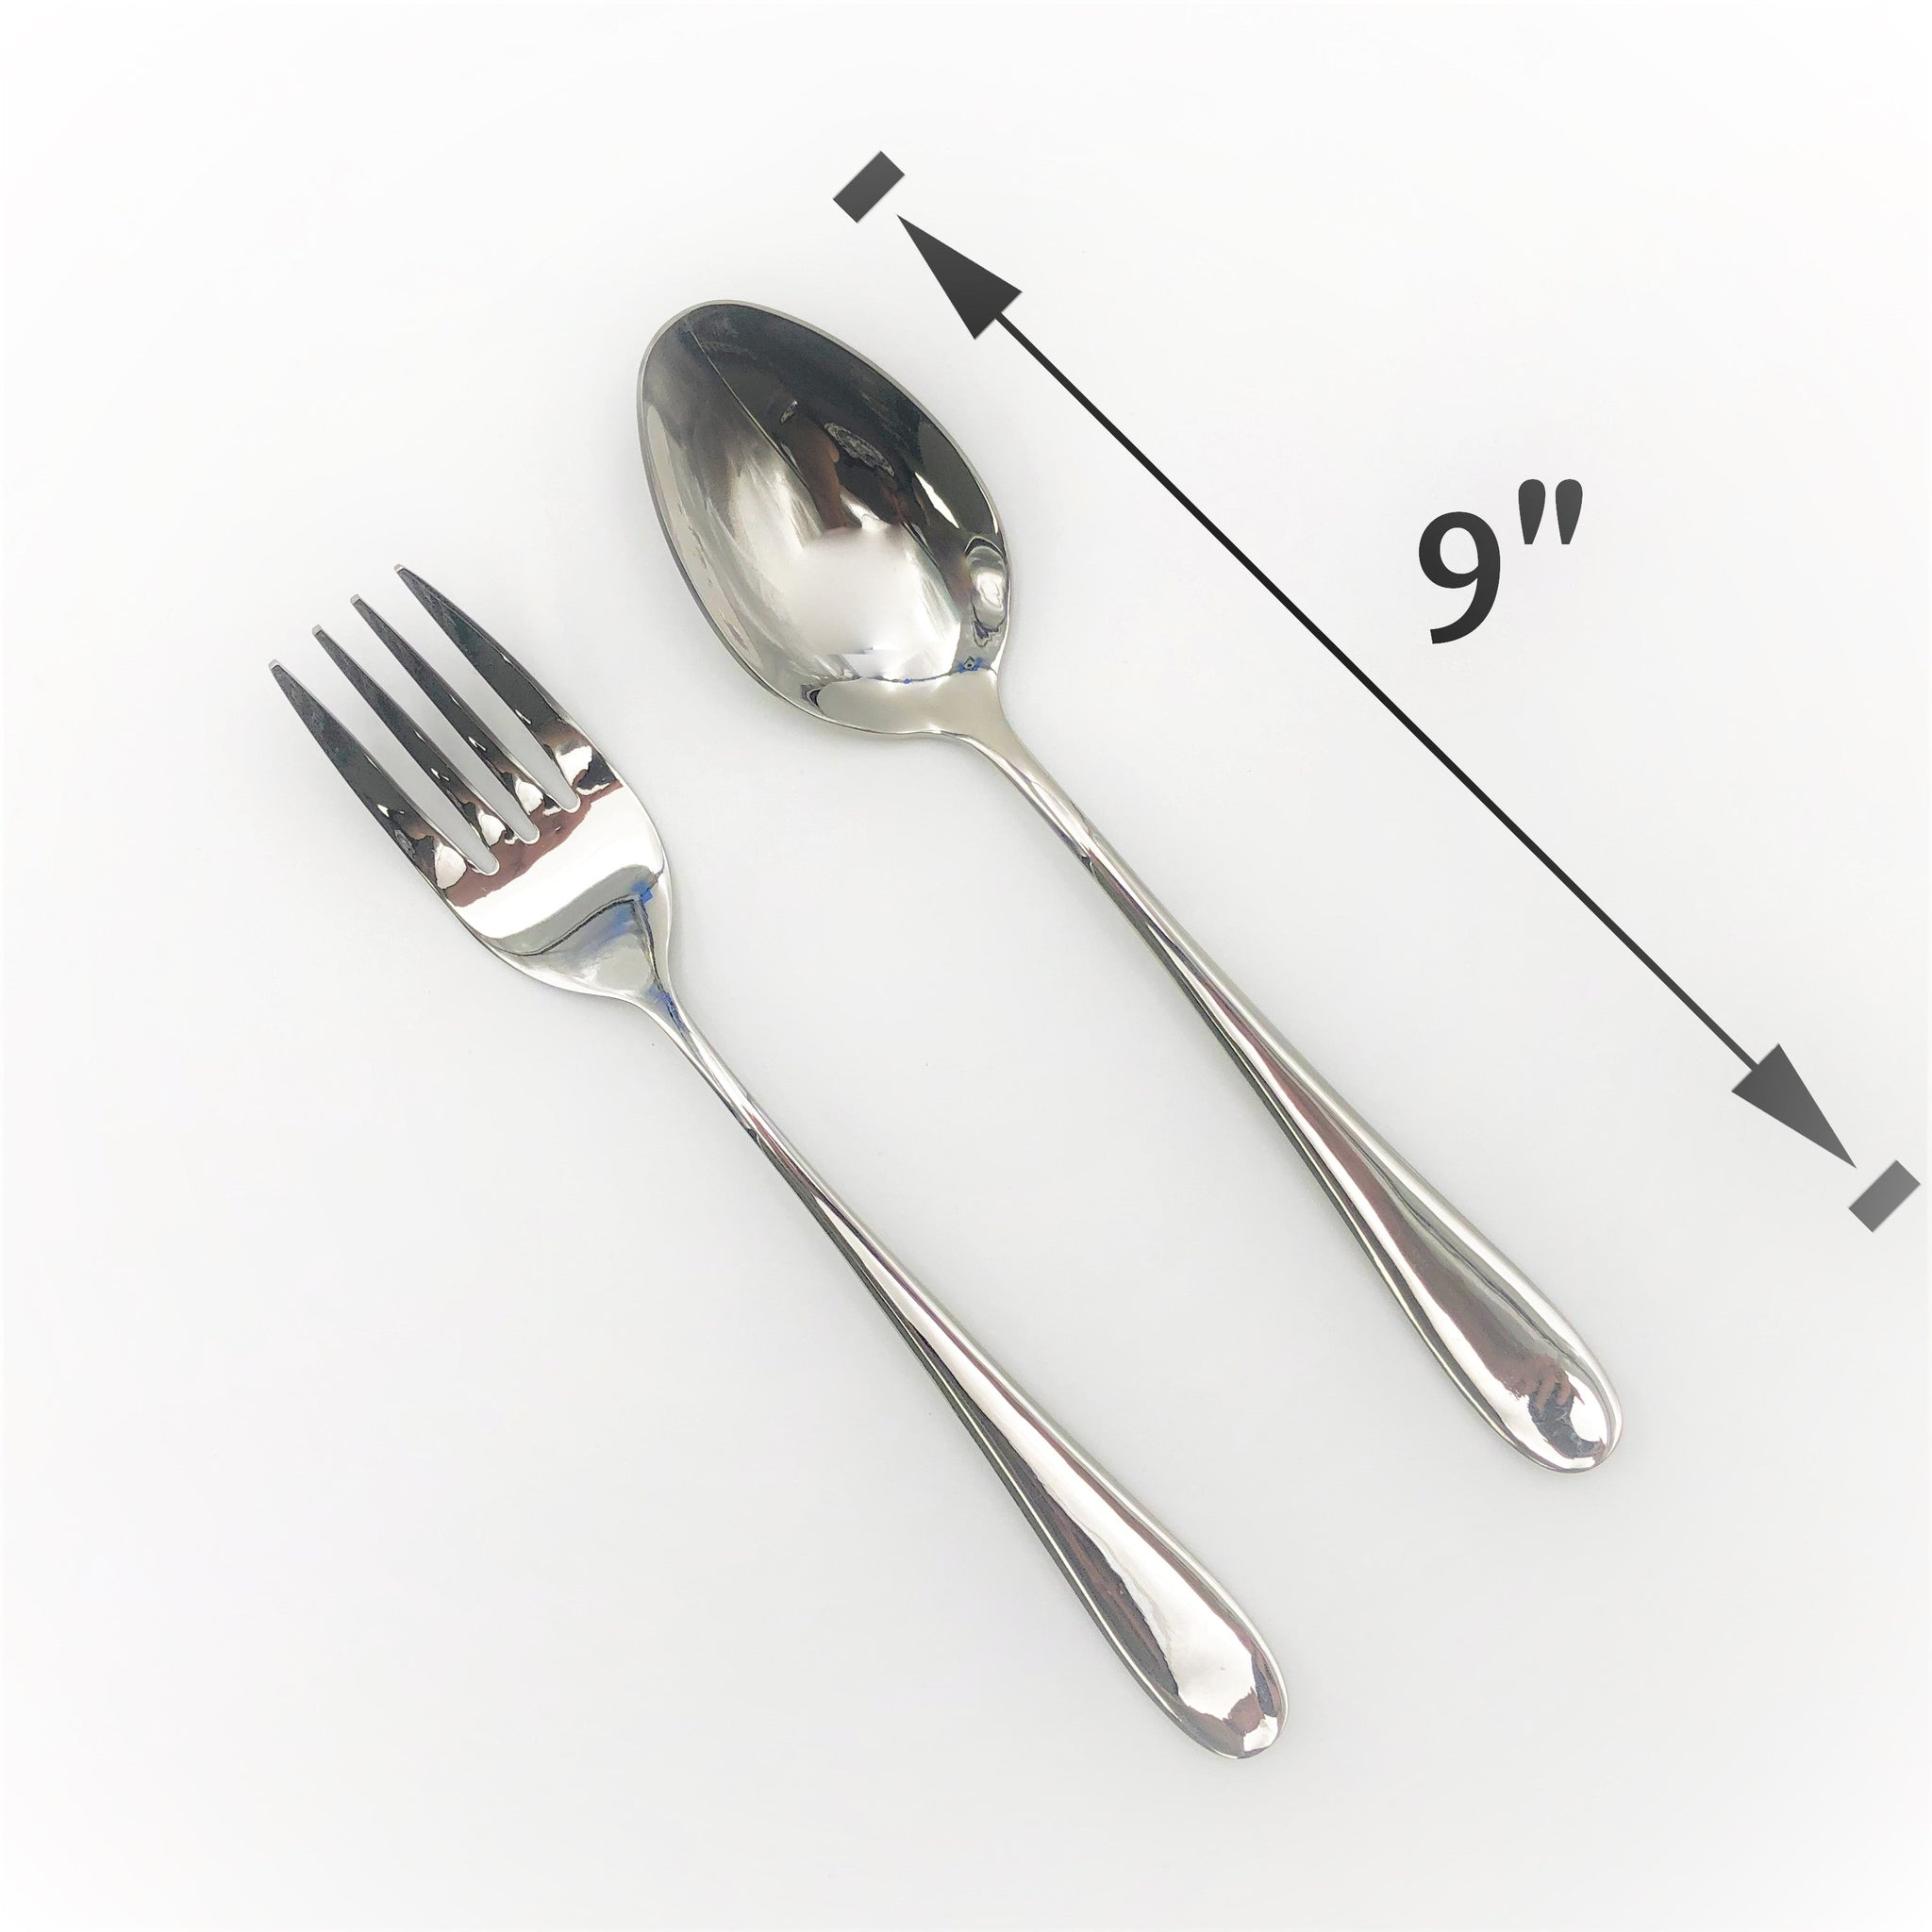 Stainless Steel Serving Fork And Knife Set Of 2 Pieces Great For Entertaining WL-555048